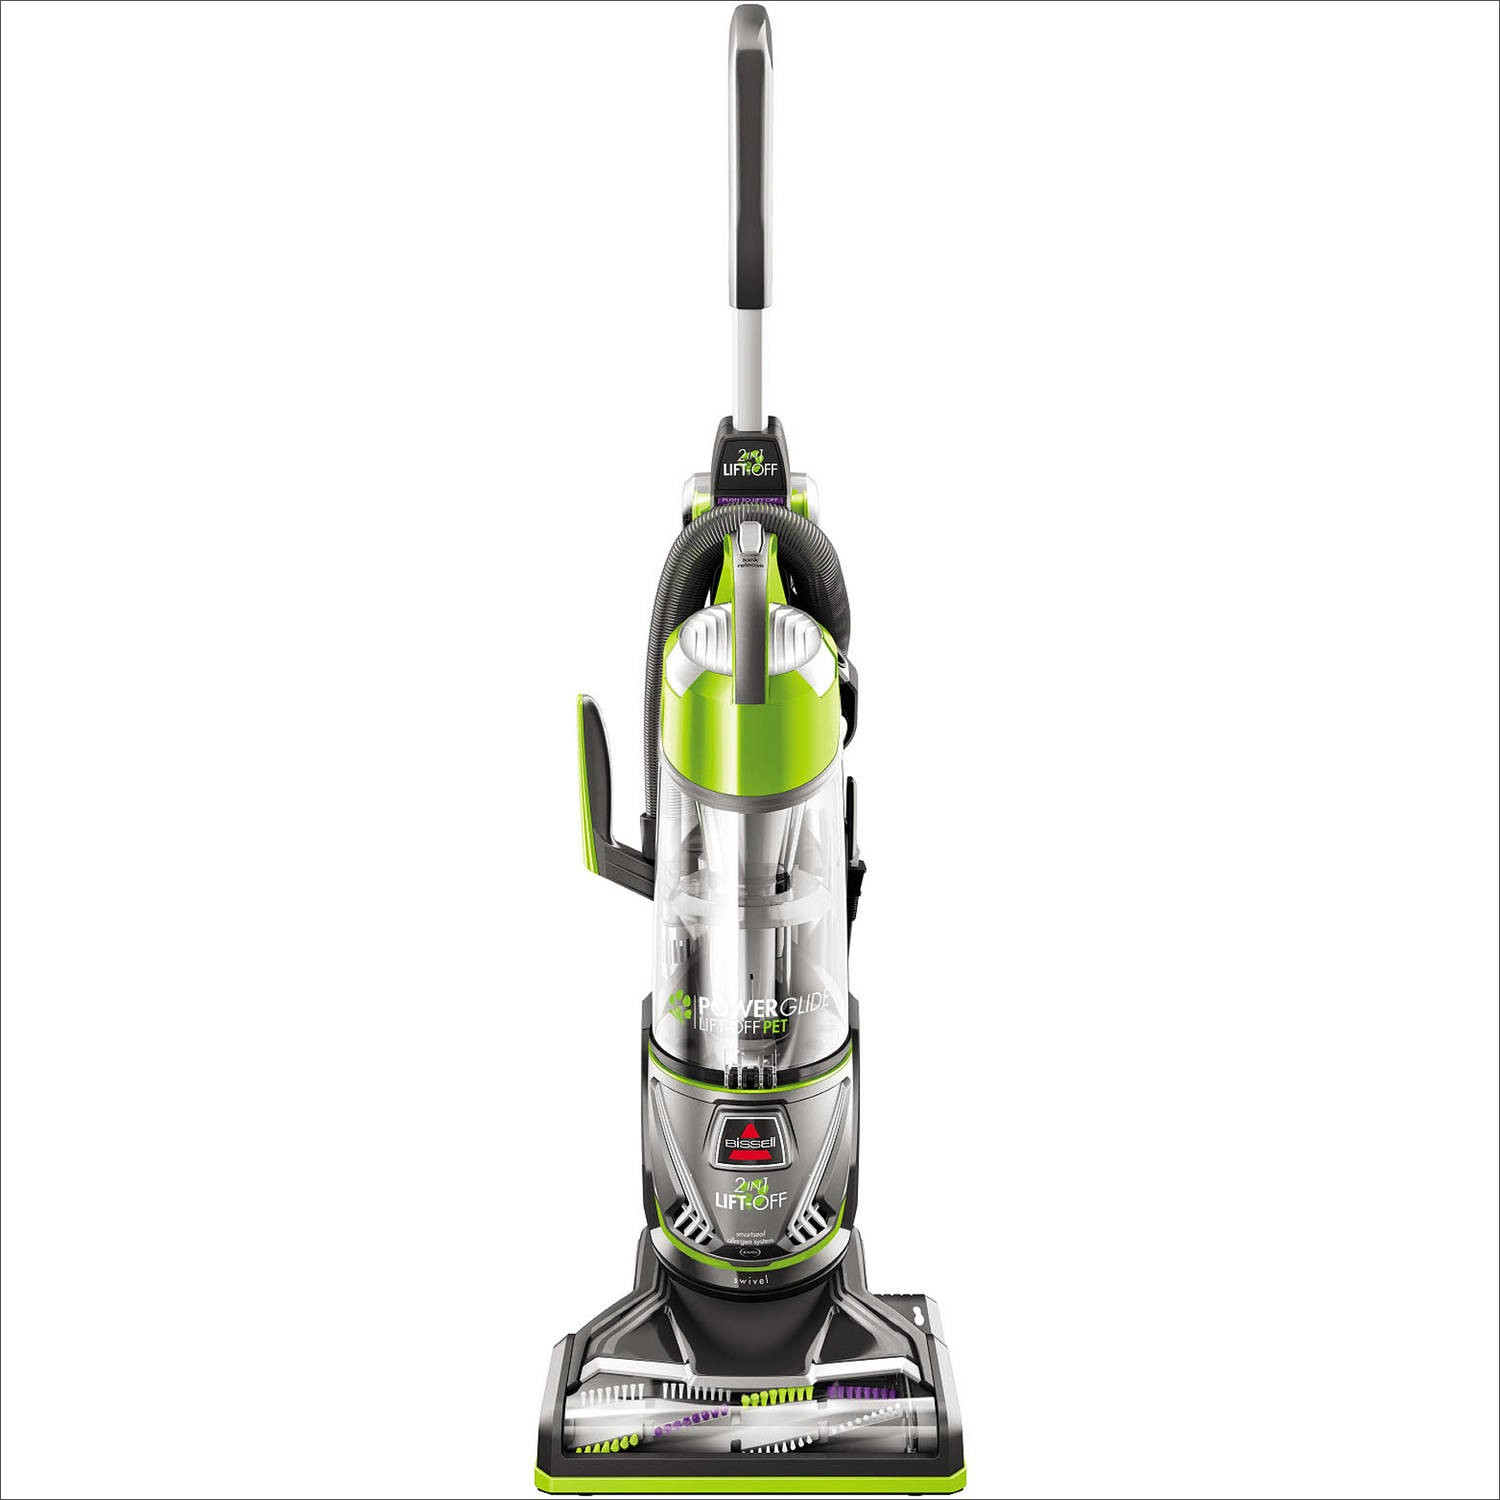 Bissell Lift Off Bagless Vacuum Cleaner • VacuumCleaness